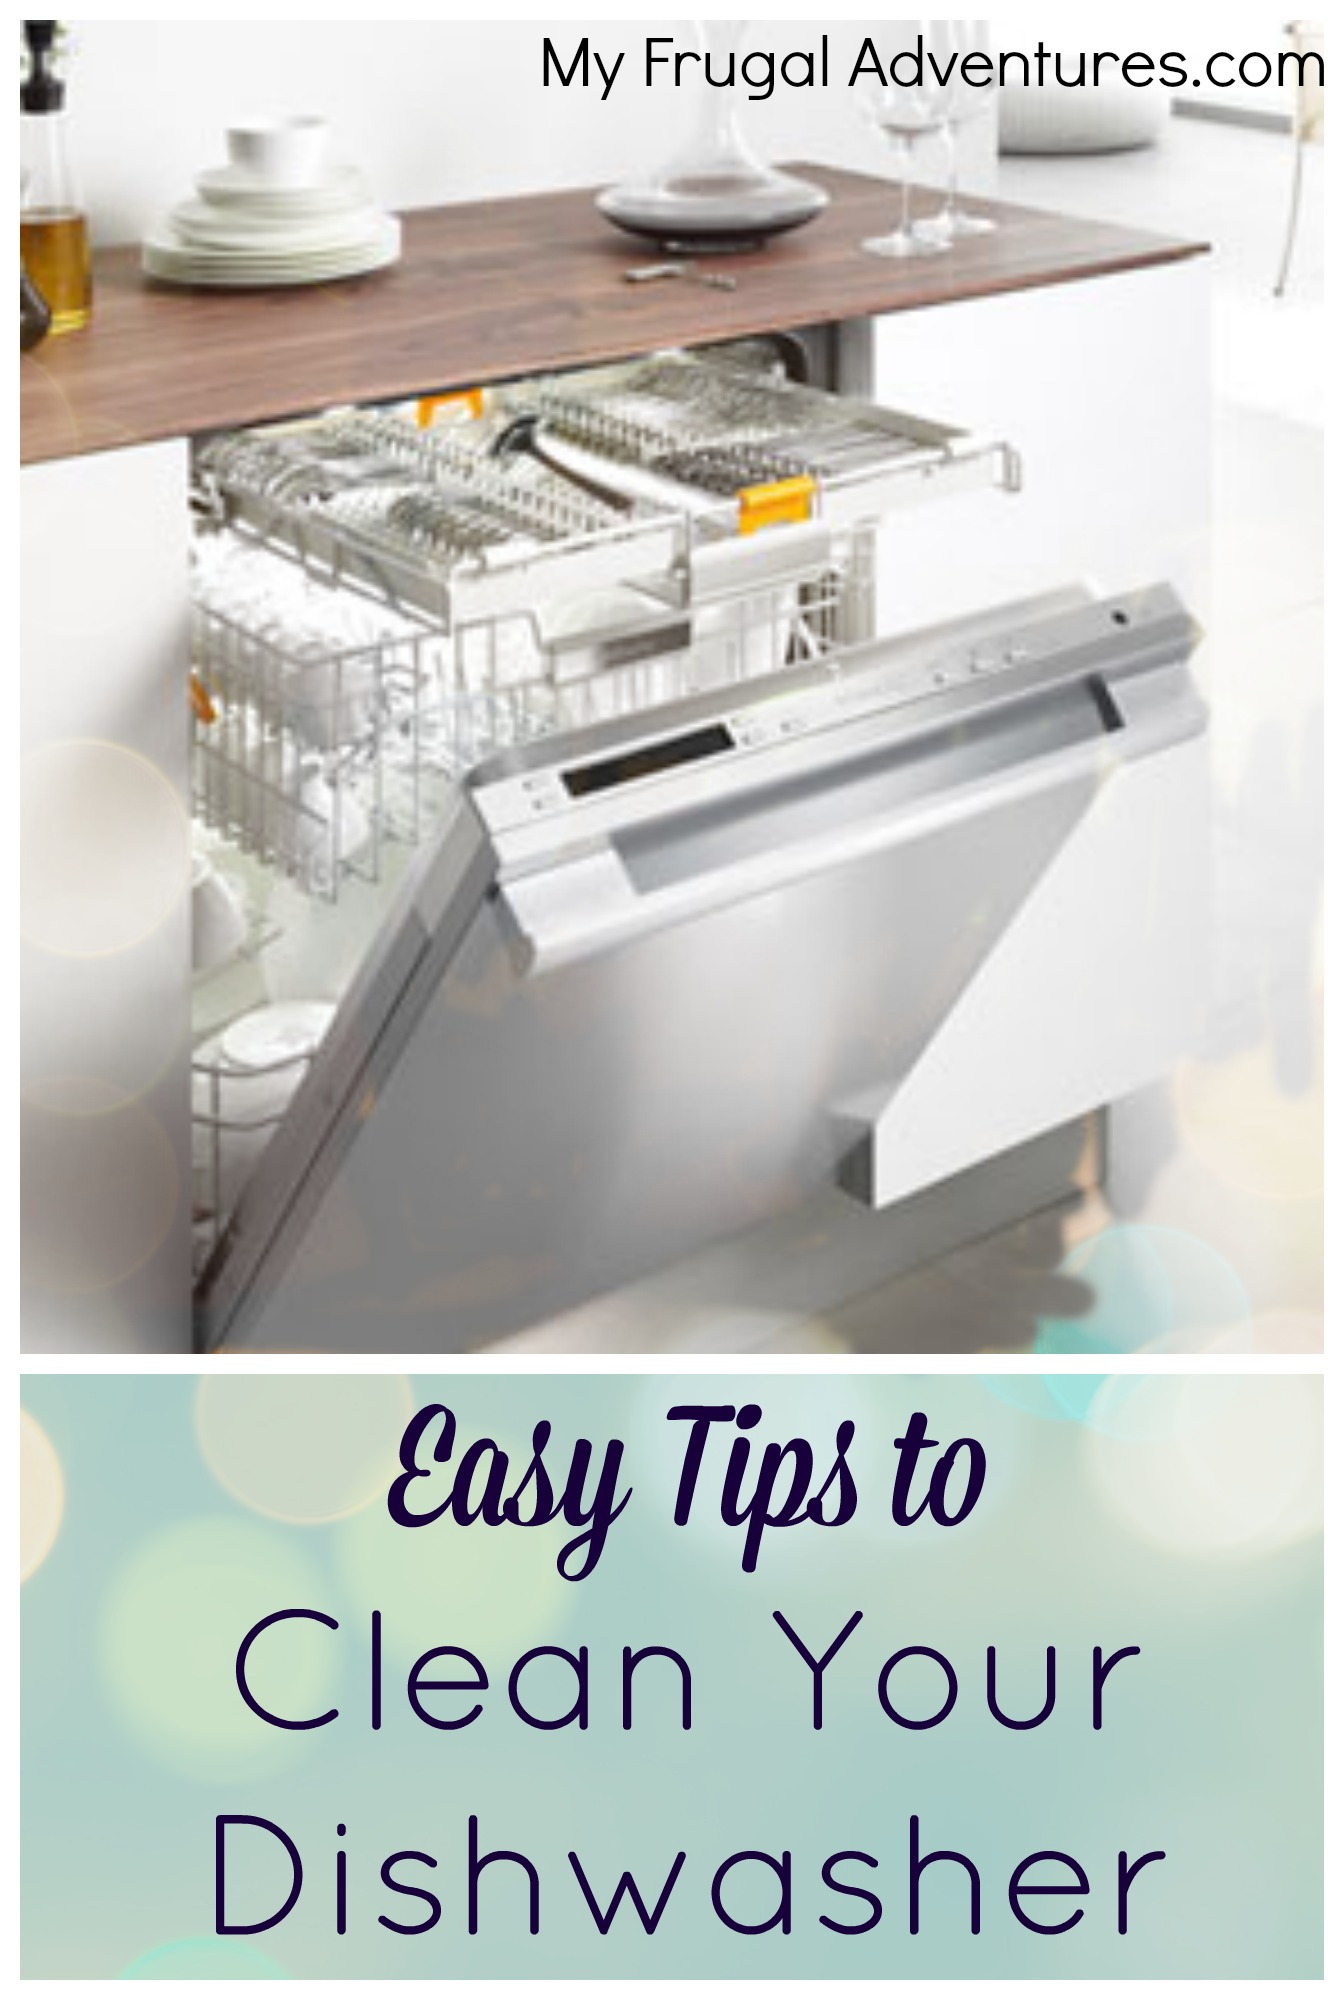 How To Clean Your Dishwasher My Frugal Adventures